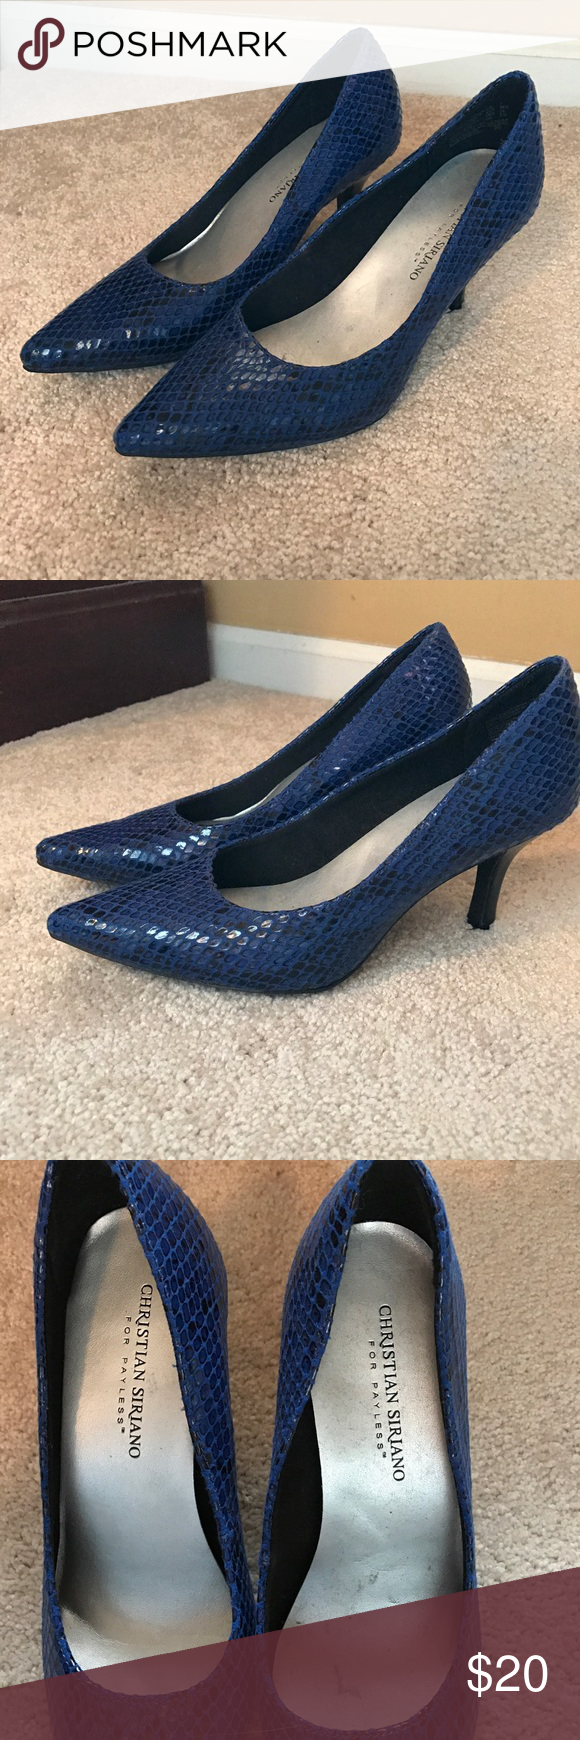 💙Blue Snake Skin Heels Good condition blue snake skin heels. Heels are about 2 inches. Brand is Christian Siriano. Christian Siriano Shoes Heels